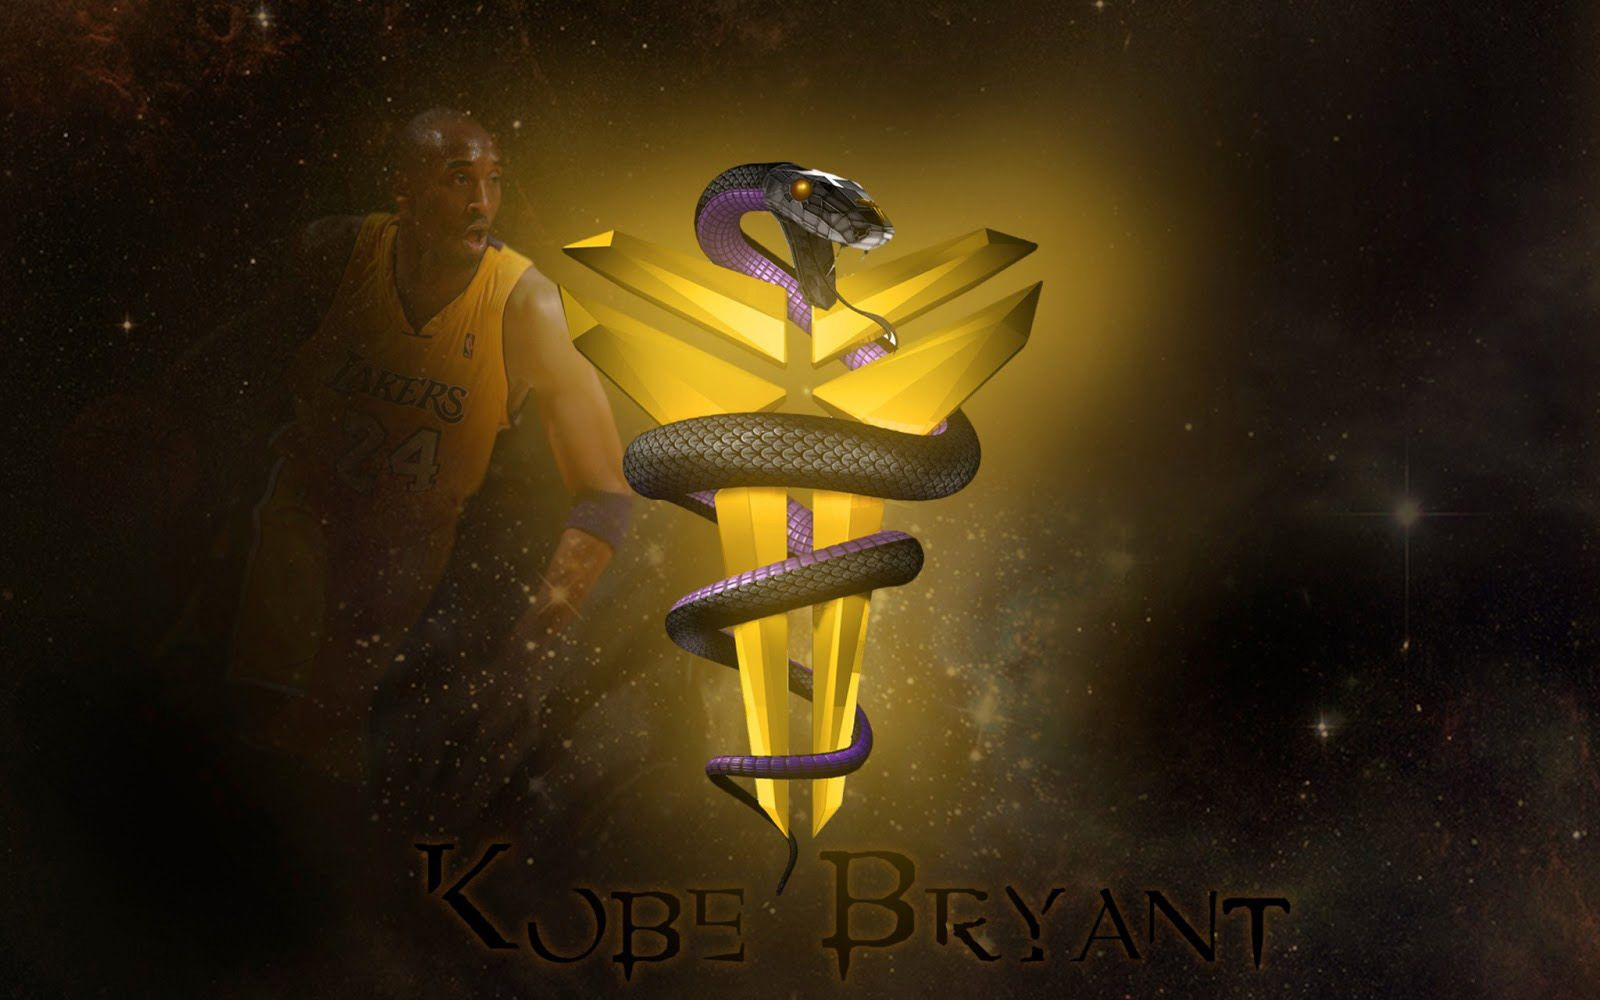 Black Mamba Snake Wallpapers Android Apps on Google Play